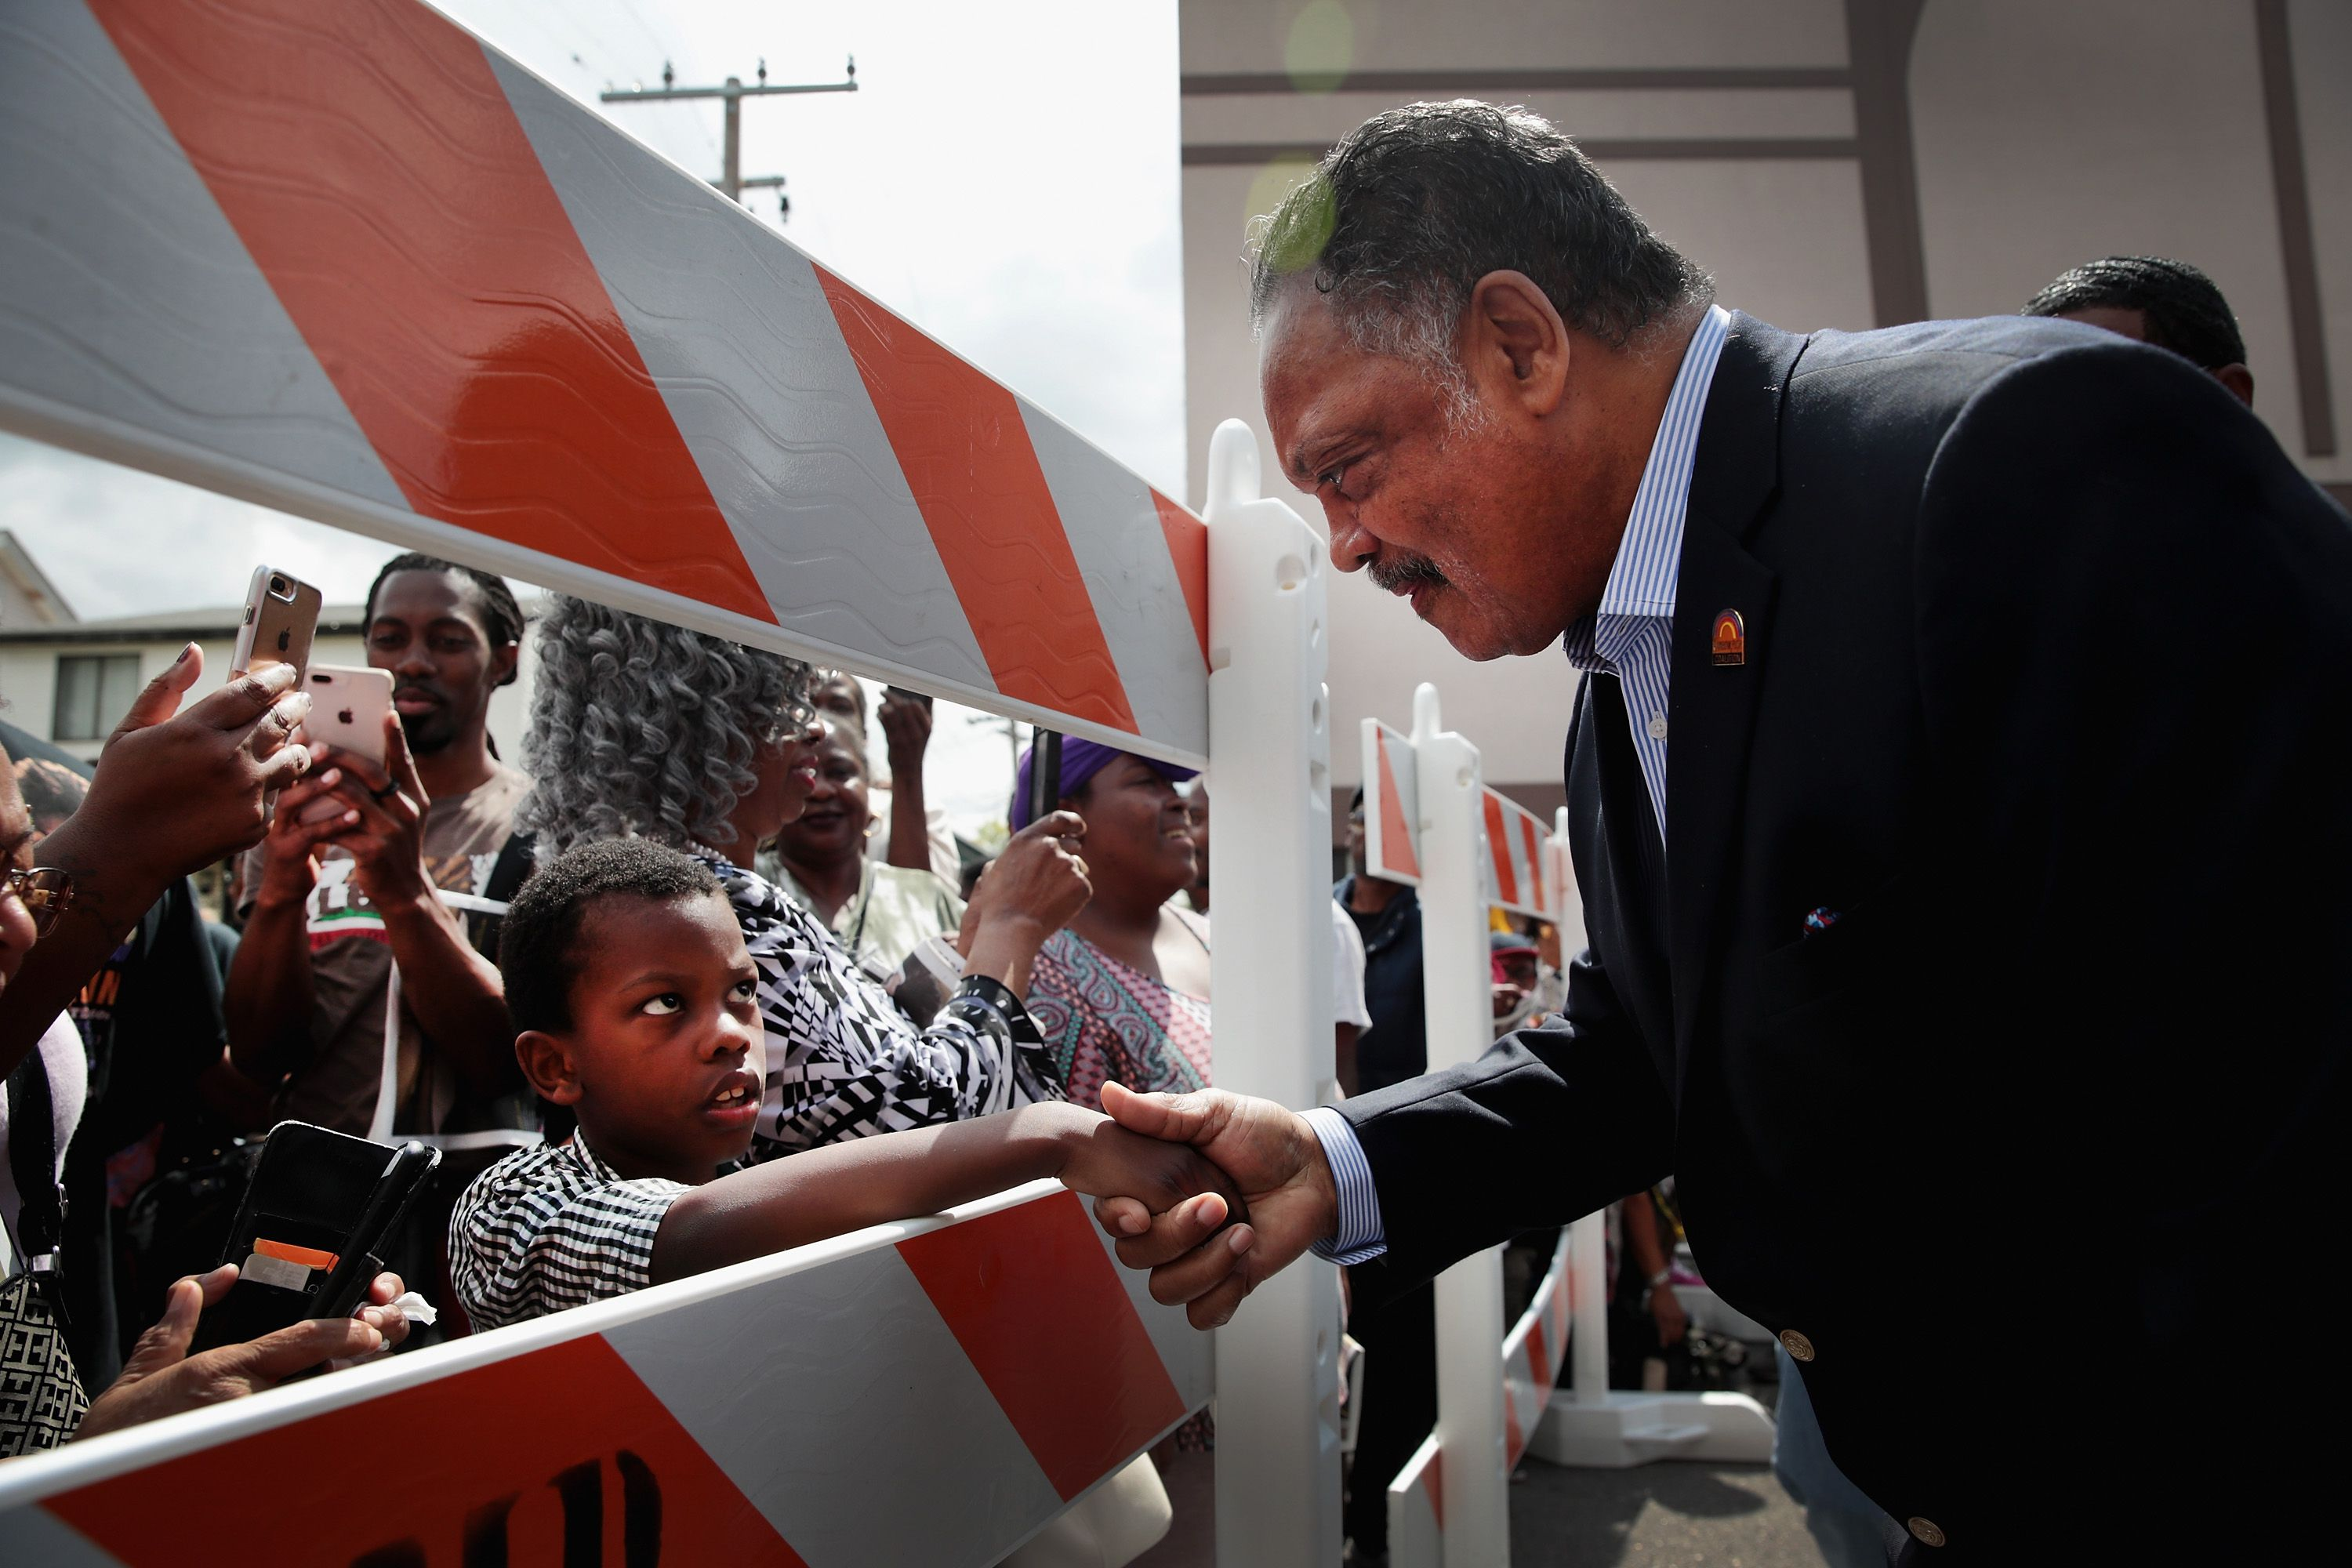 Rev. Jesse Jackson shakes the hand of a young boy.